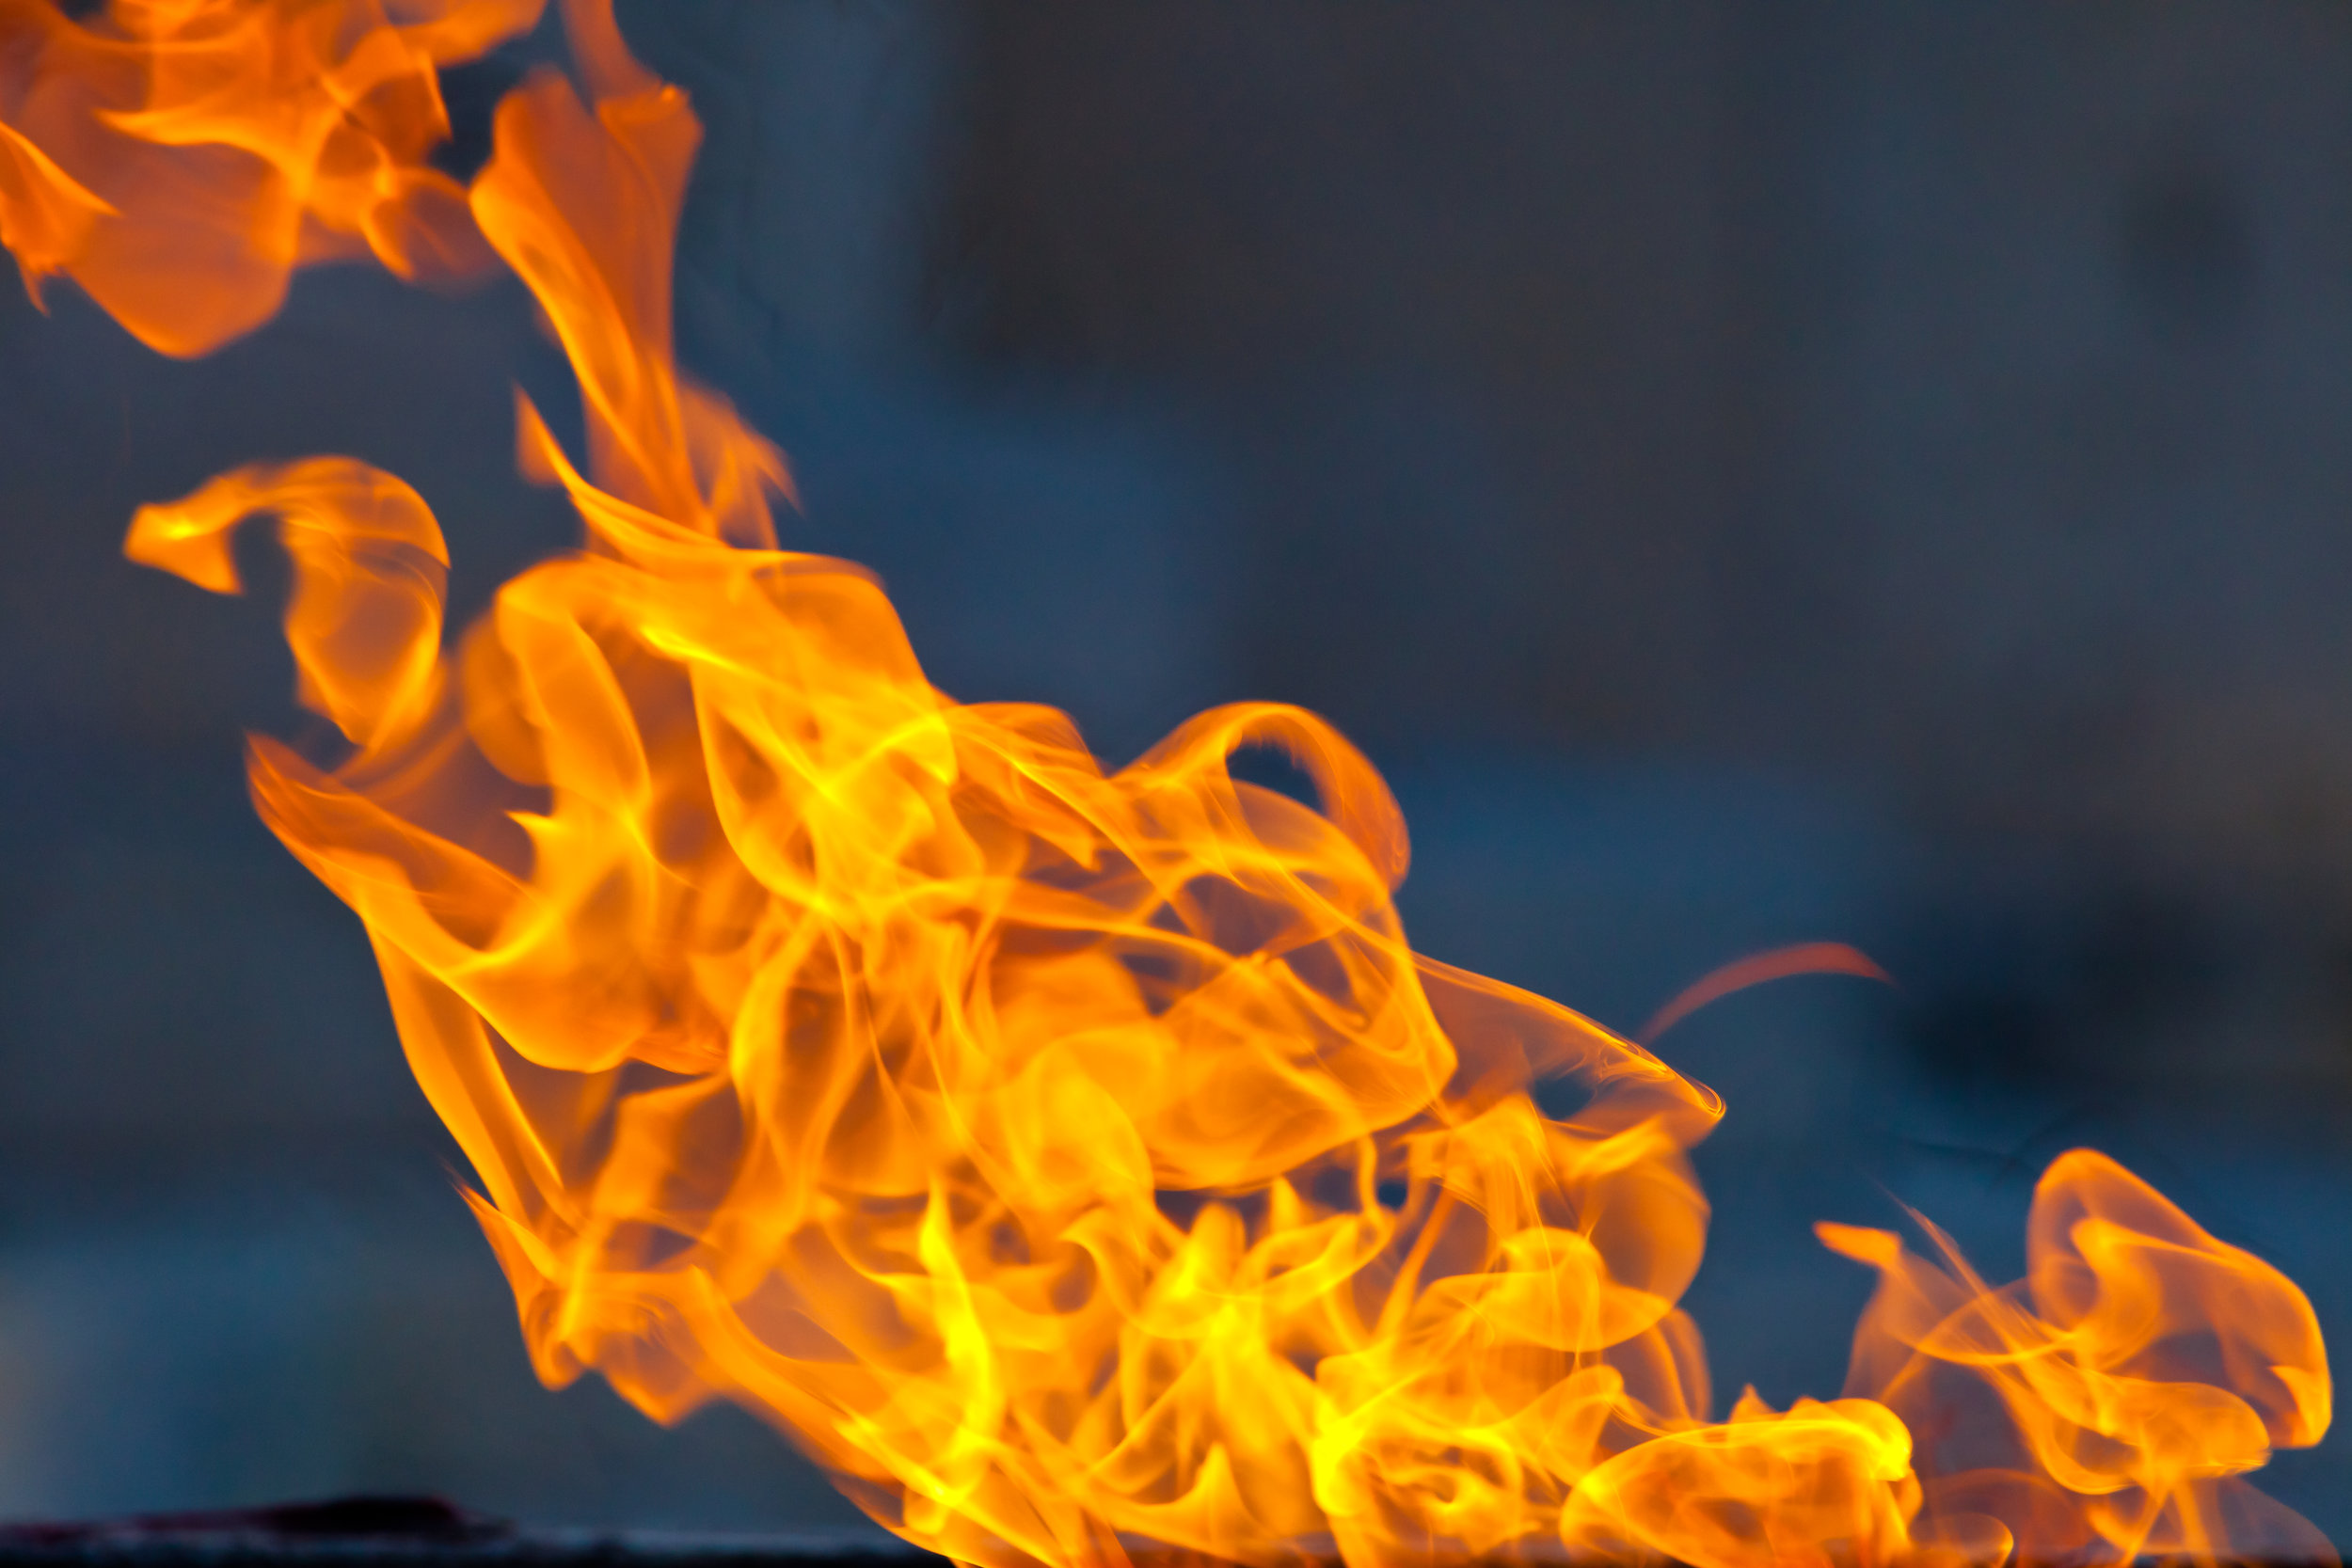 fire-flames-PH6YWMP.jpg